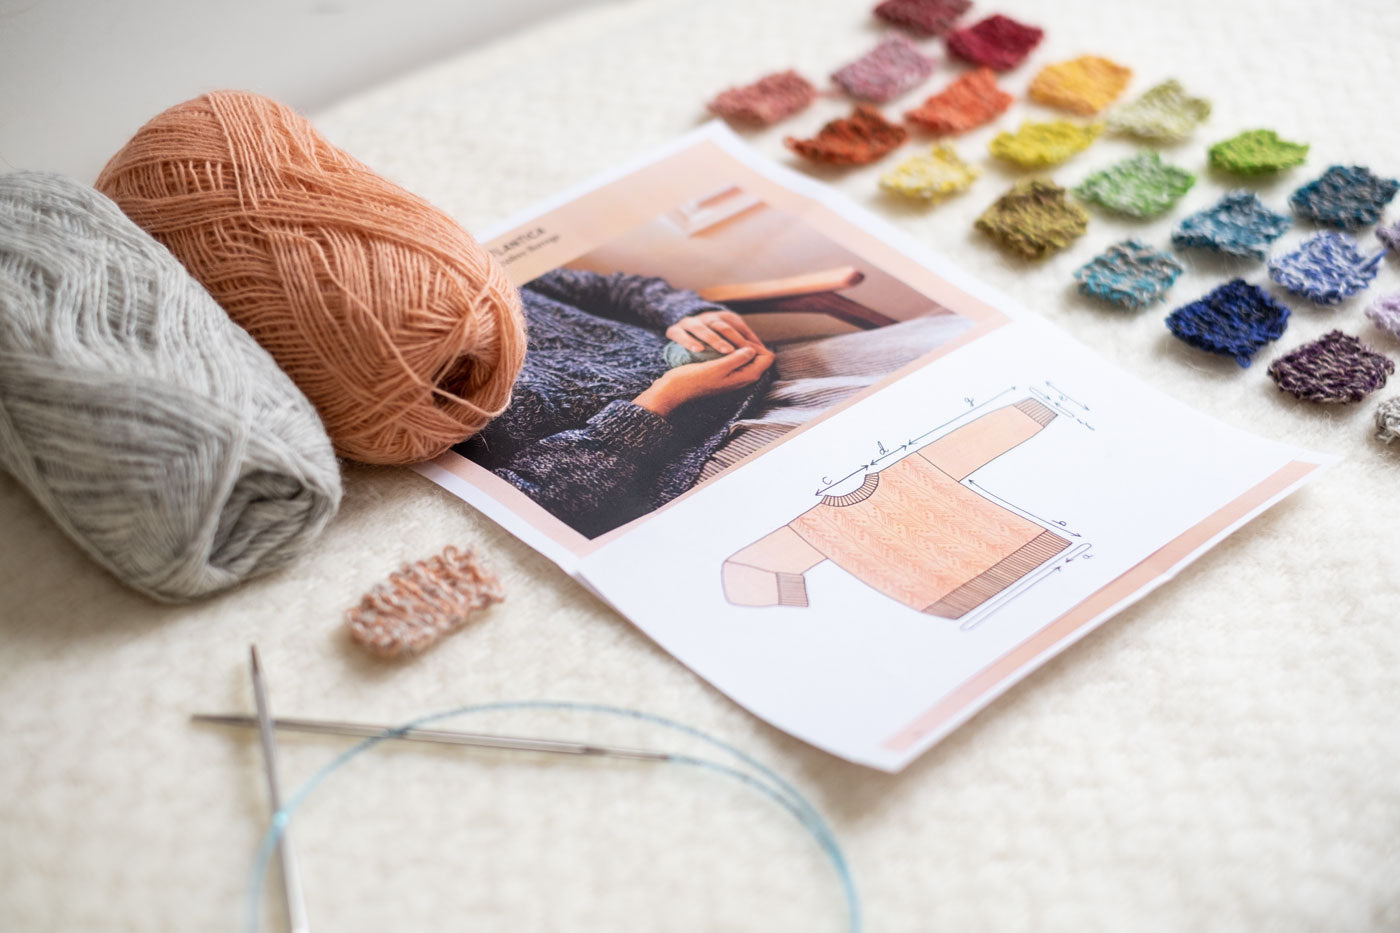 Two balls of yarn in gray and pale peach are displayed next to a pattern featuring a cable-knit sweater along with dozens of small knit swatches and knitting needles.